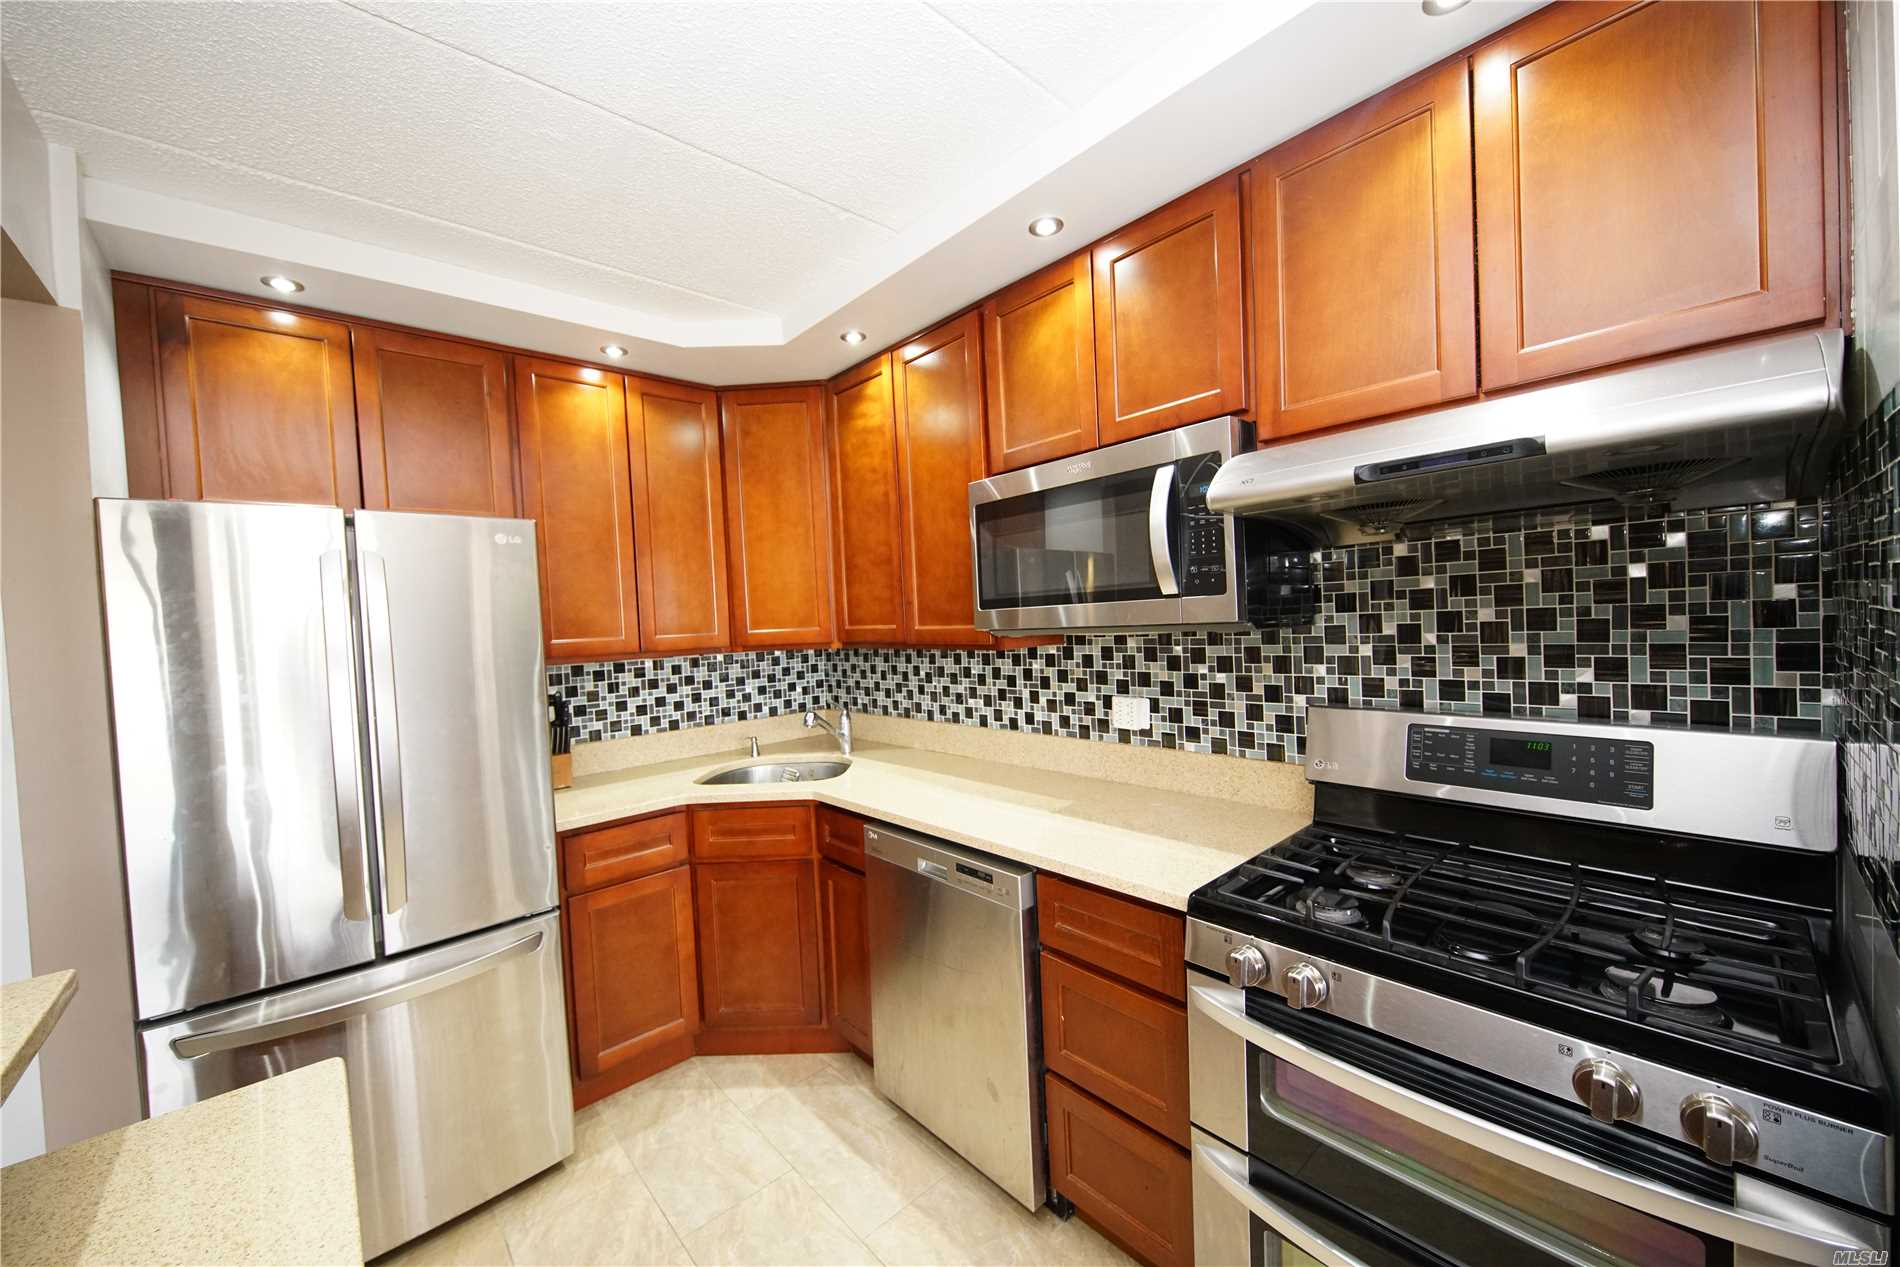 Luxury Two Bedroom With 1.5 Bath Including 1 Parking Space, Nice Balcony. Common Charge Include Gas, Heat Hot Water. Located On 12 Fl, Walking Distant To Train Station, Queens Mall, Costco And Restaurants, Etc. 24 Hour Door Man.